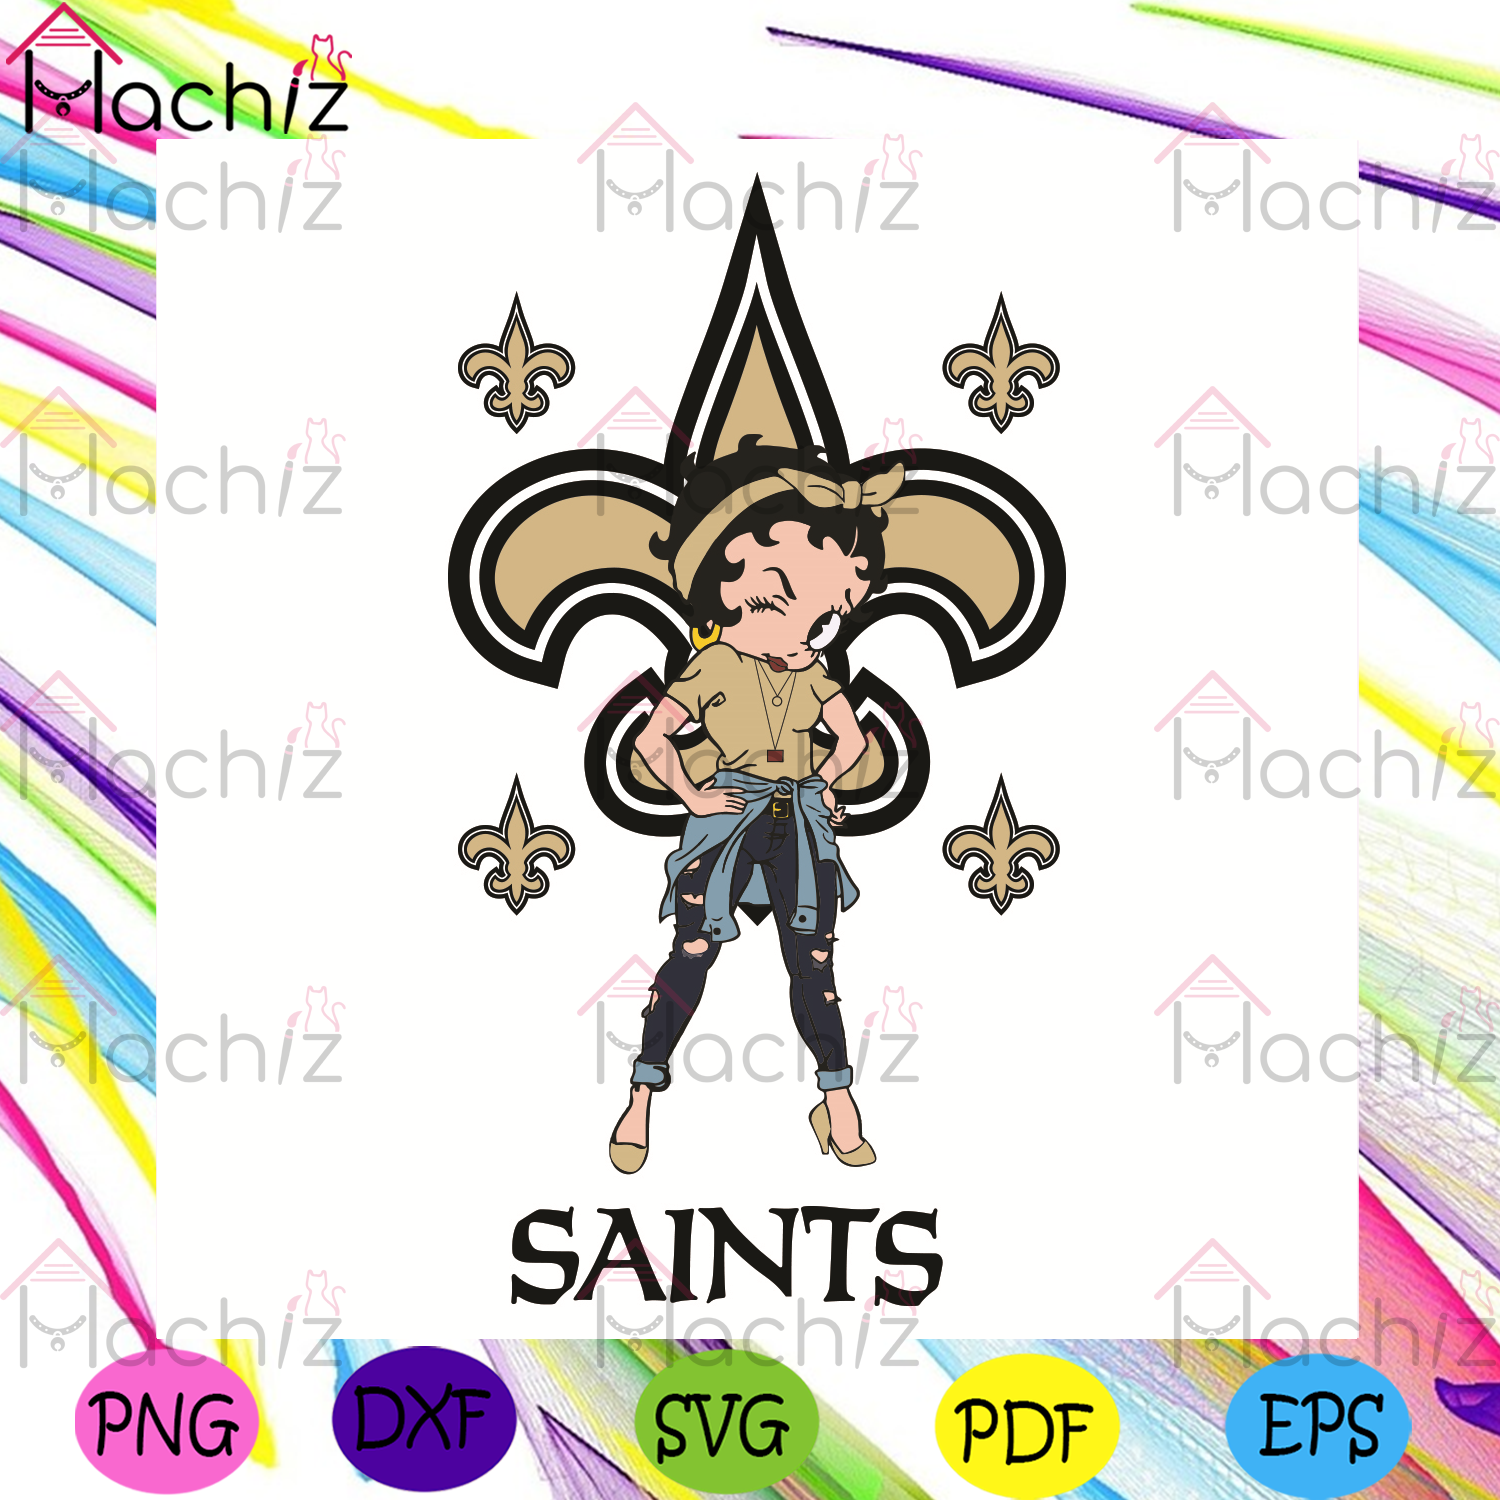 Betty Boop New Orleans Saints Svg, Sport Svg, New Orleans Saints Football Team Svg, New Orleans Saints Svg, New Orleans Saints Fans Svg, Betty Boop Svg, New Orleans Saints Lovers Svg, New Orleans Saints Gifts Svg, NFL Svg